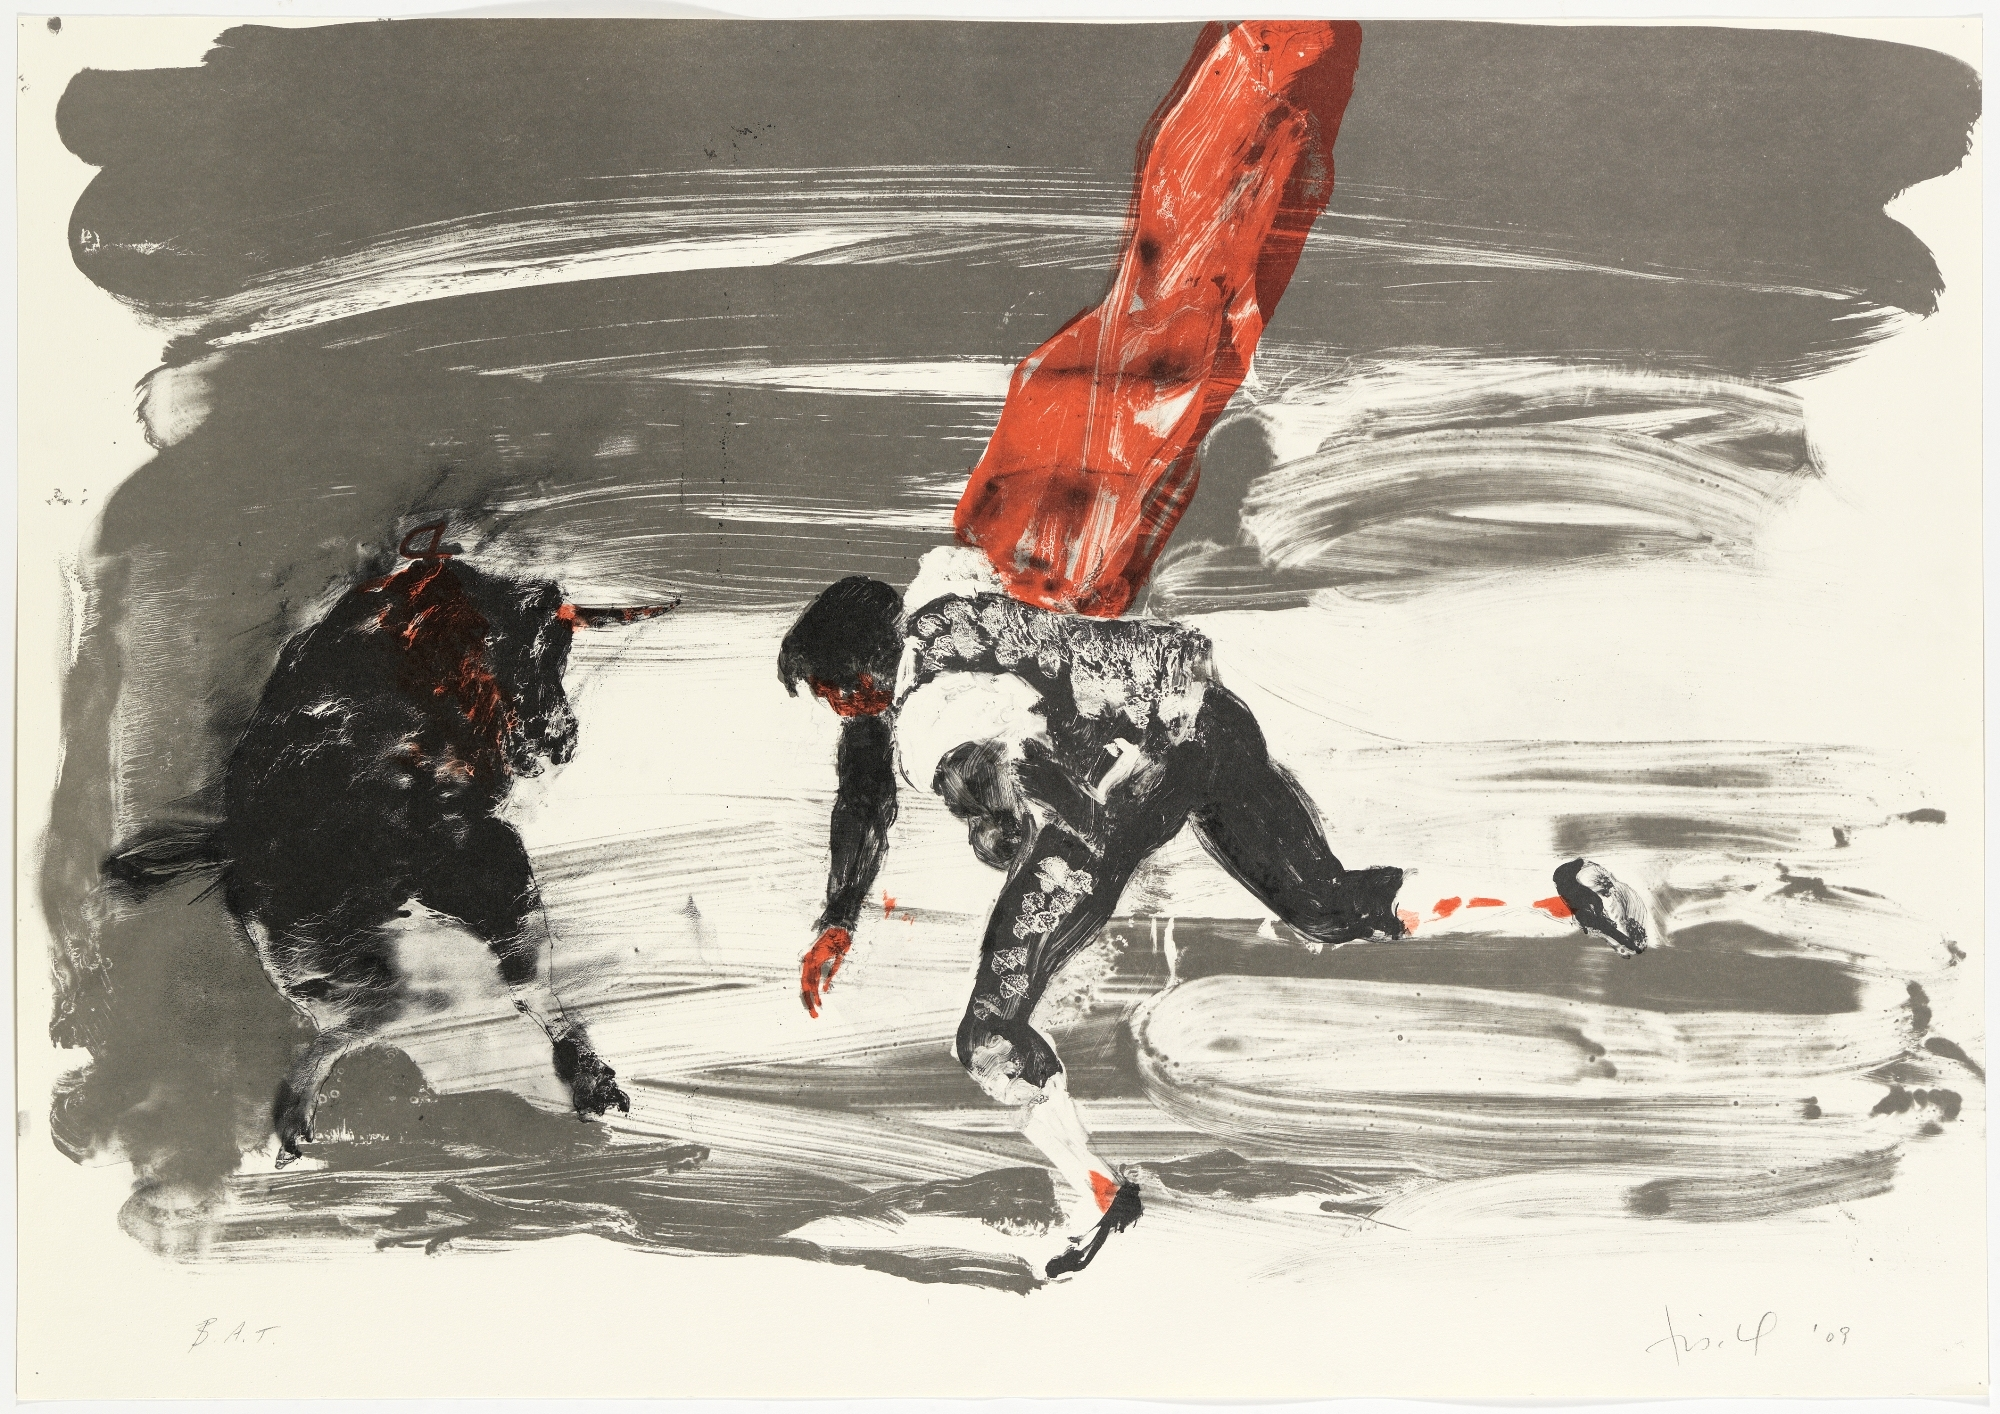 Untitled, #2 by Eric Fischl